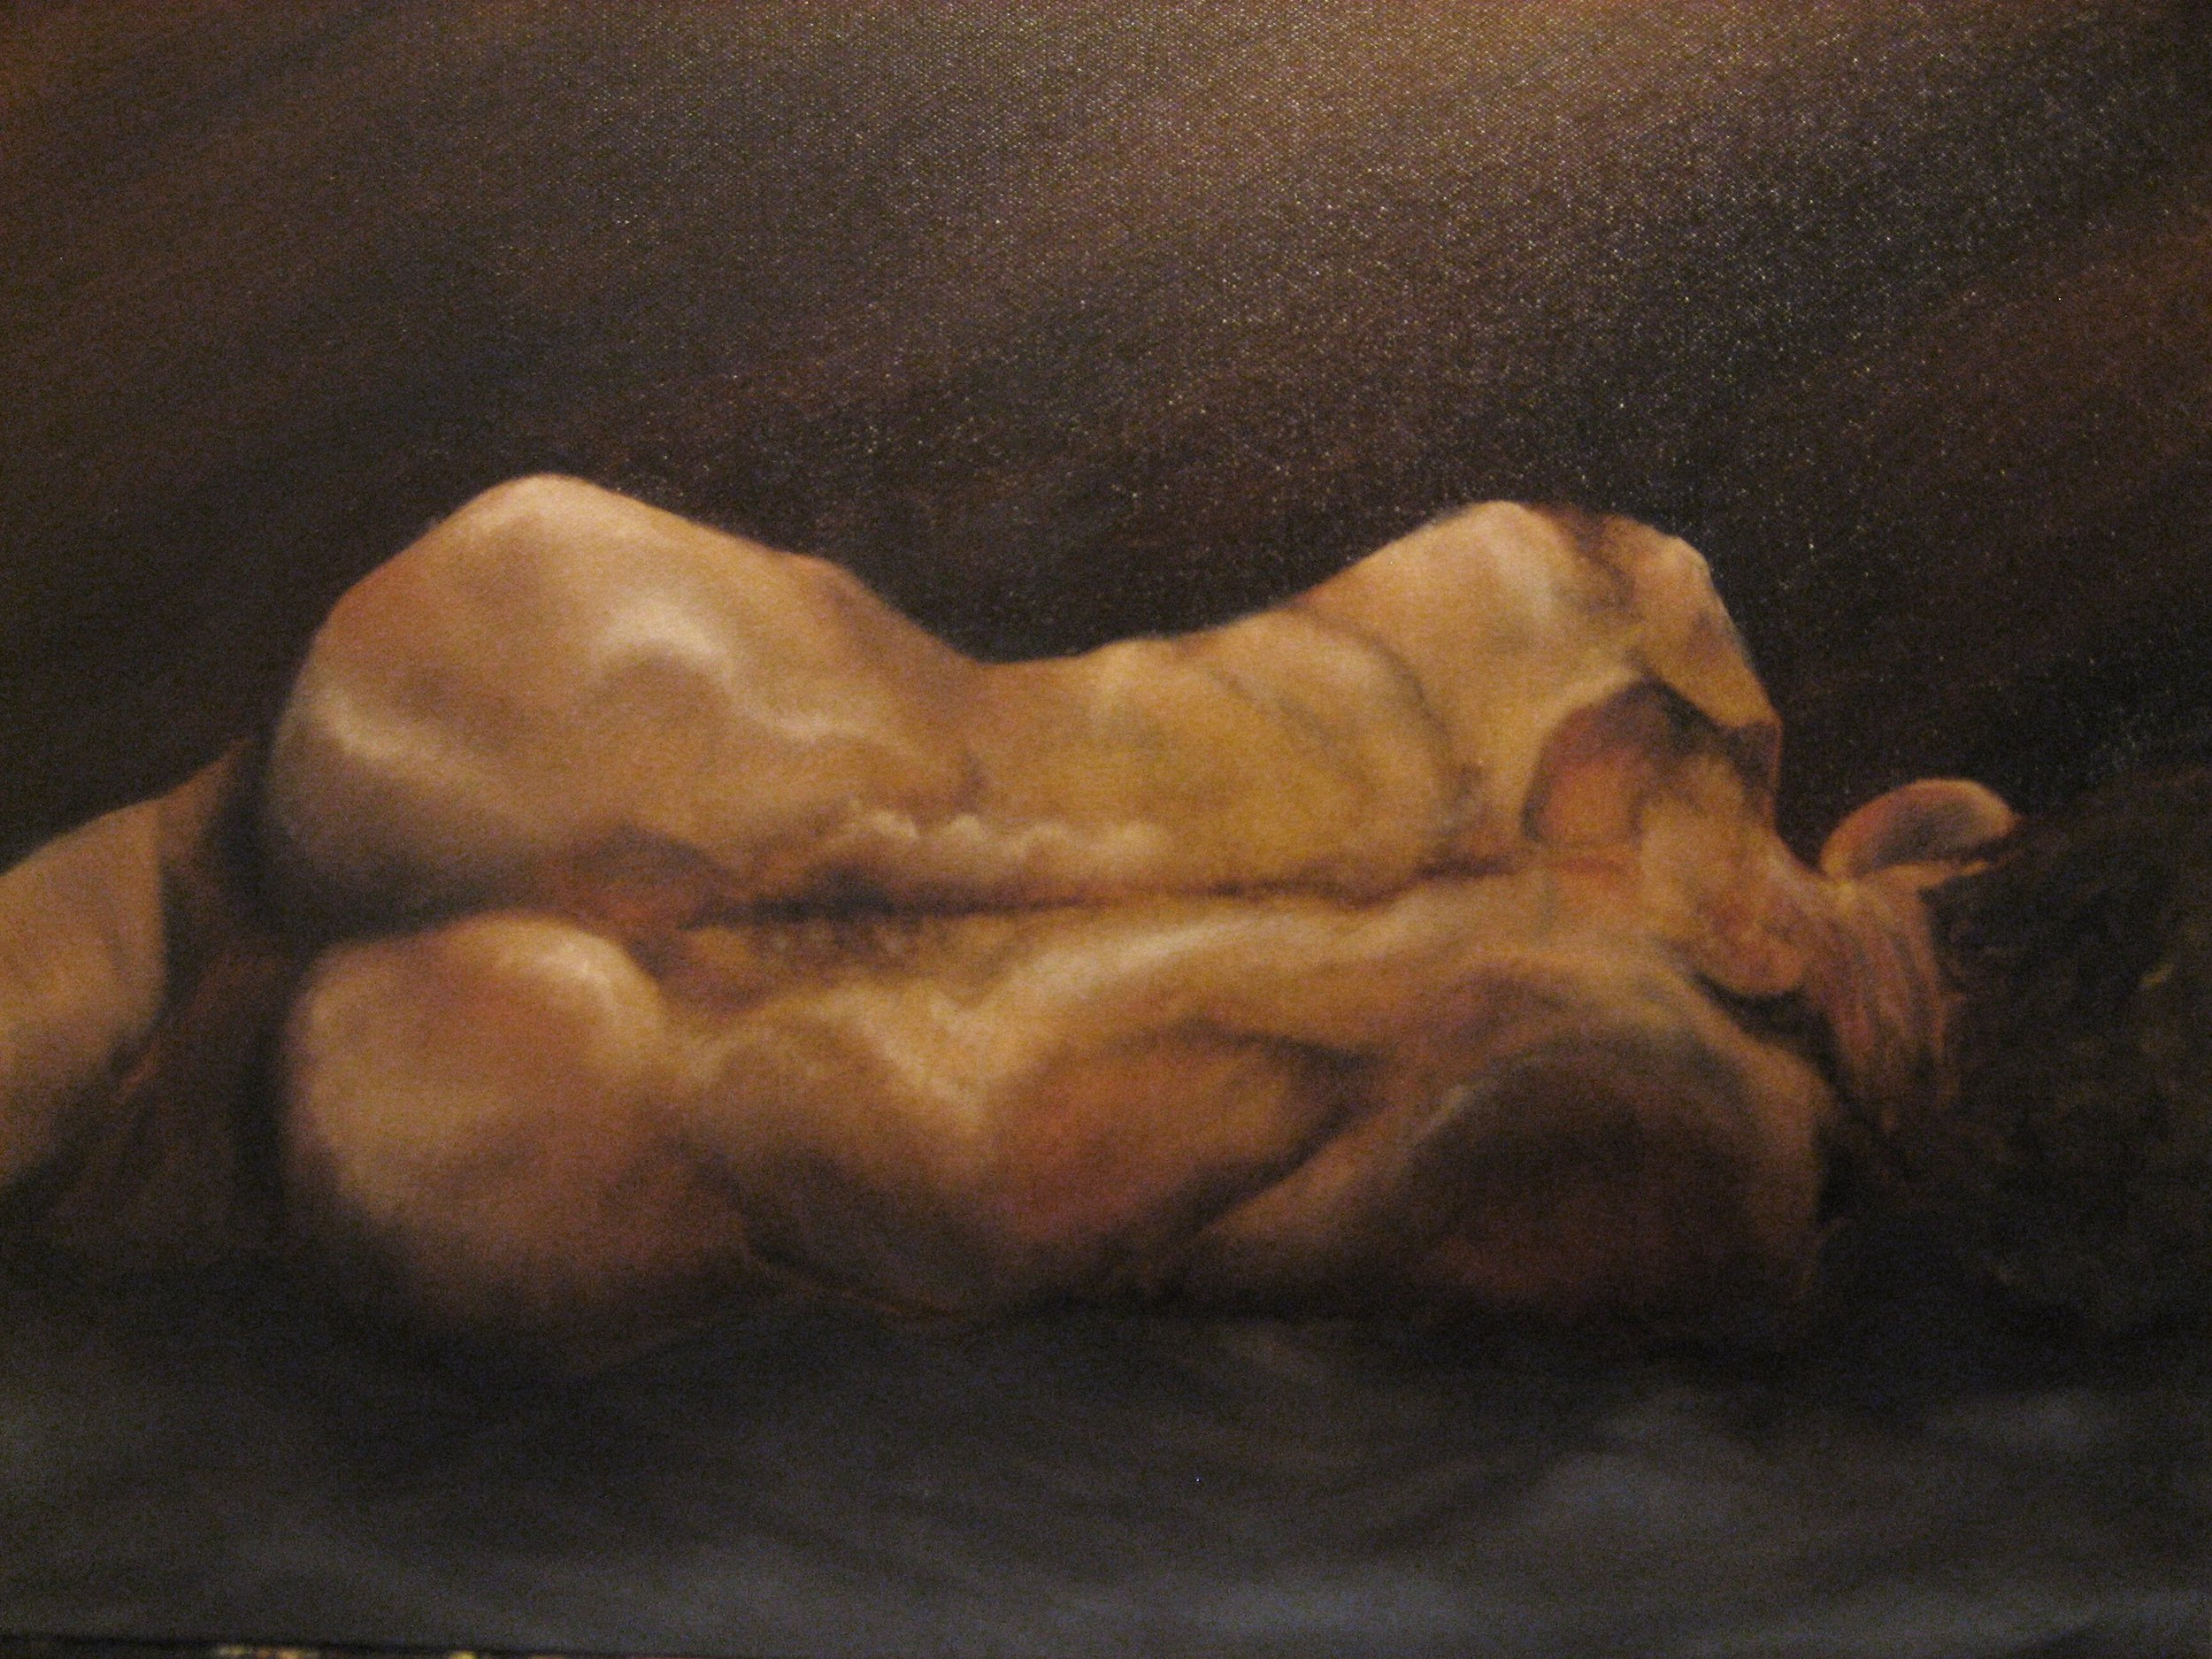 McGee, Brenna - Nude Male at Rest 16x20.JPG